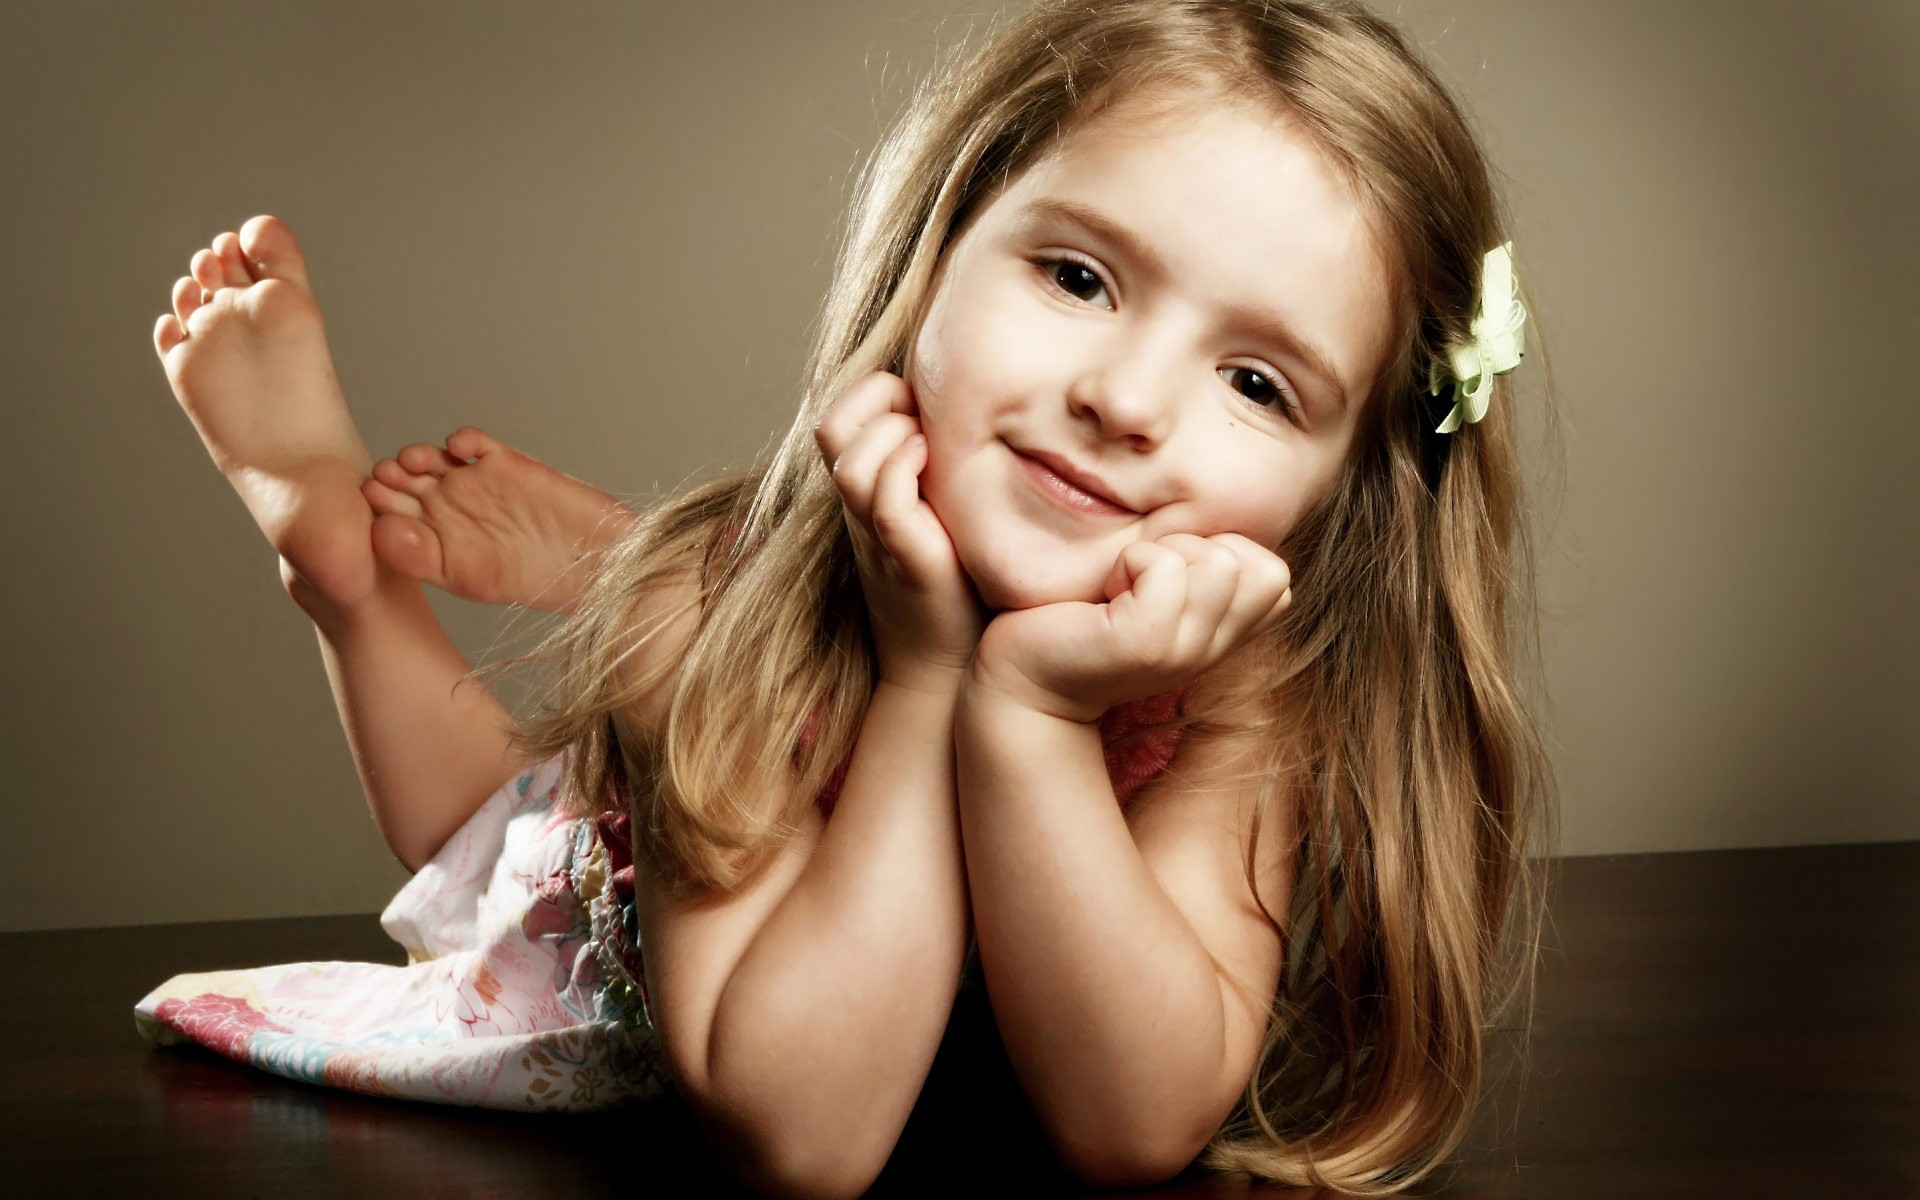 Cute Baby Girl Pics For Facebook Profile Kenetiks Best Baby Girl Hd Wallpapers Sky Hd Wallpaper 1920x1200